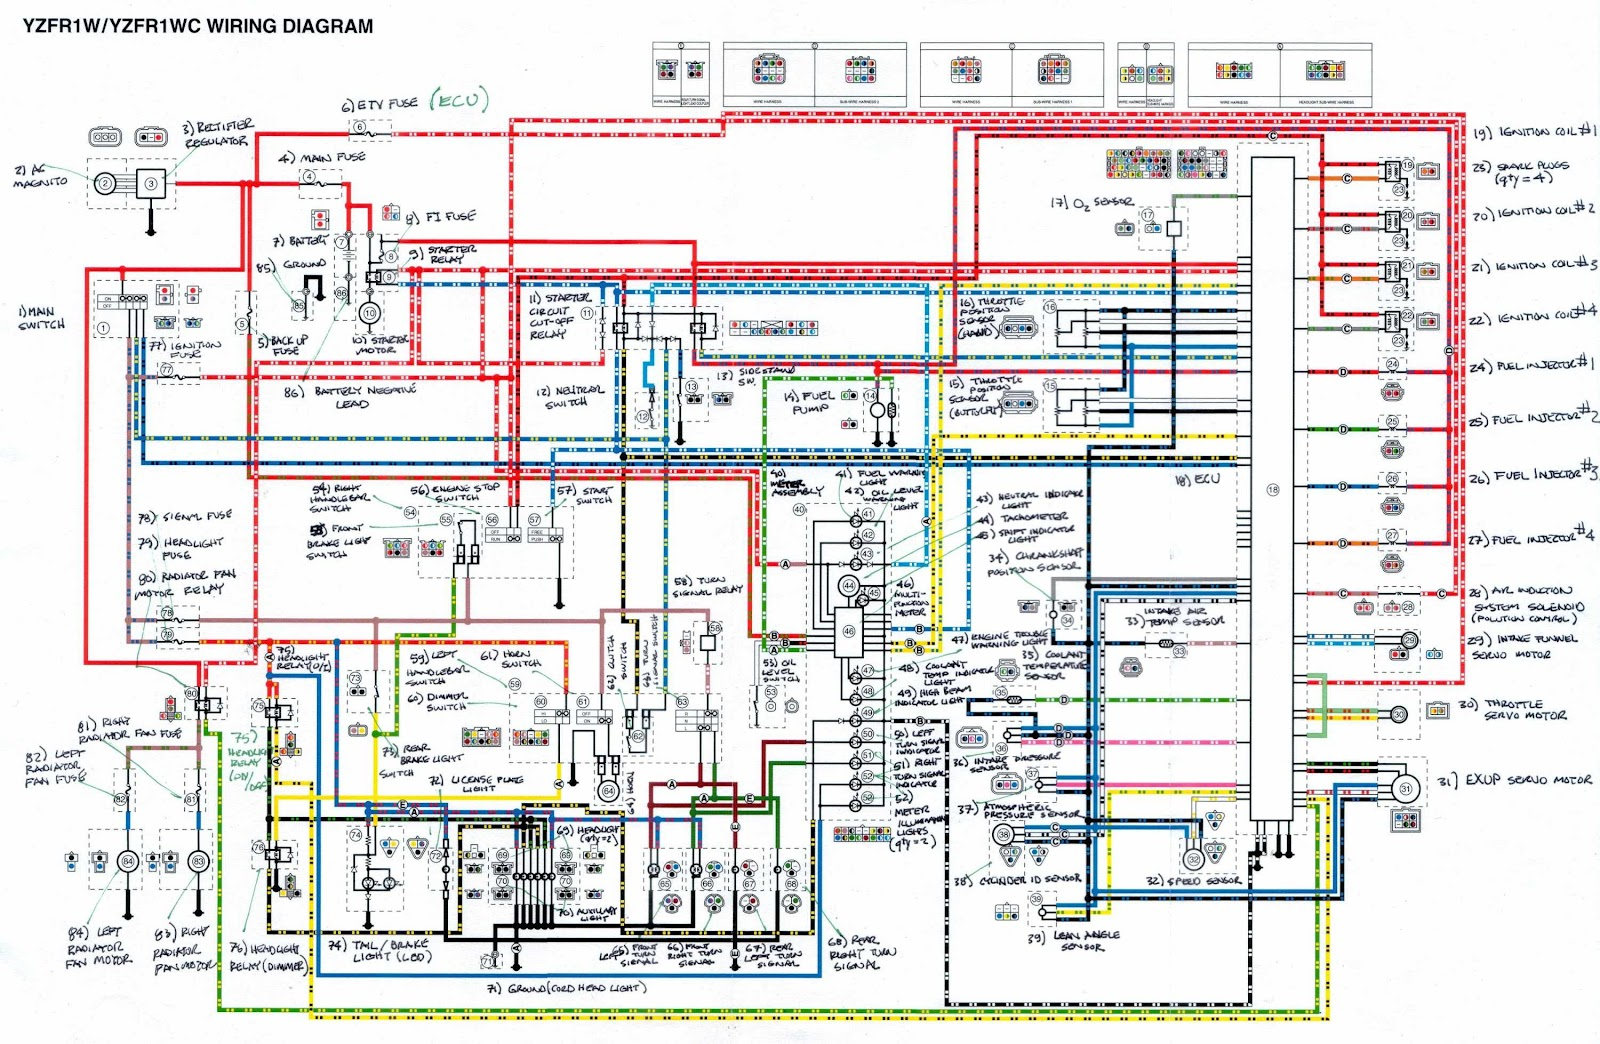 yamaha yzf r1 motorcycle wiring diagram all about wiring 87 ford mustang  fuse box 87 mustang